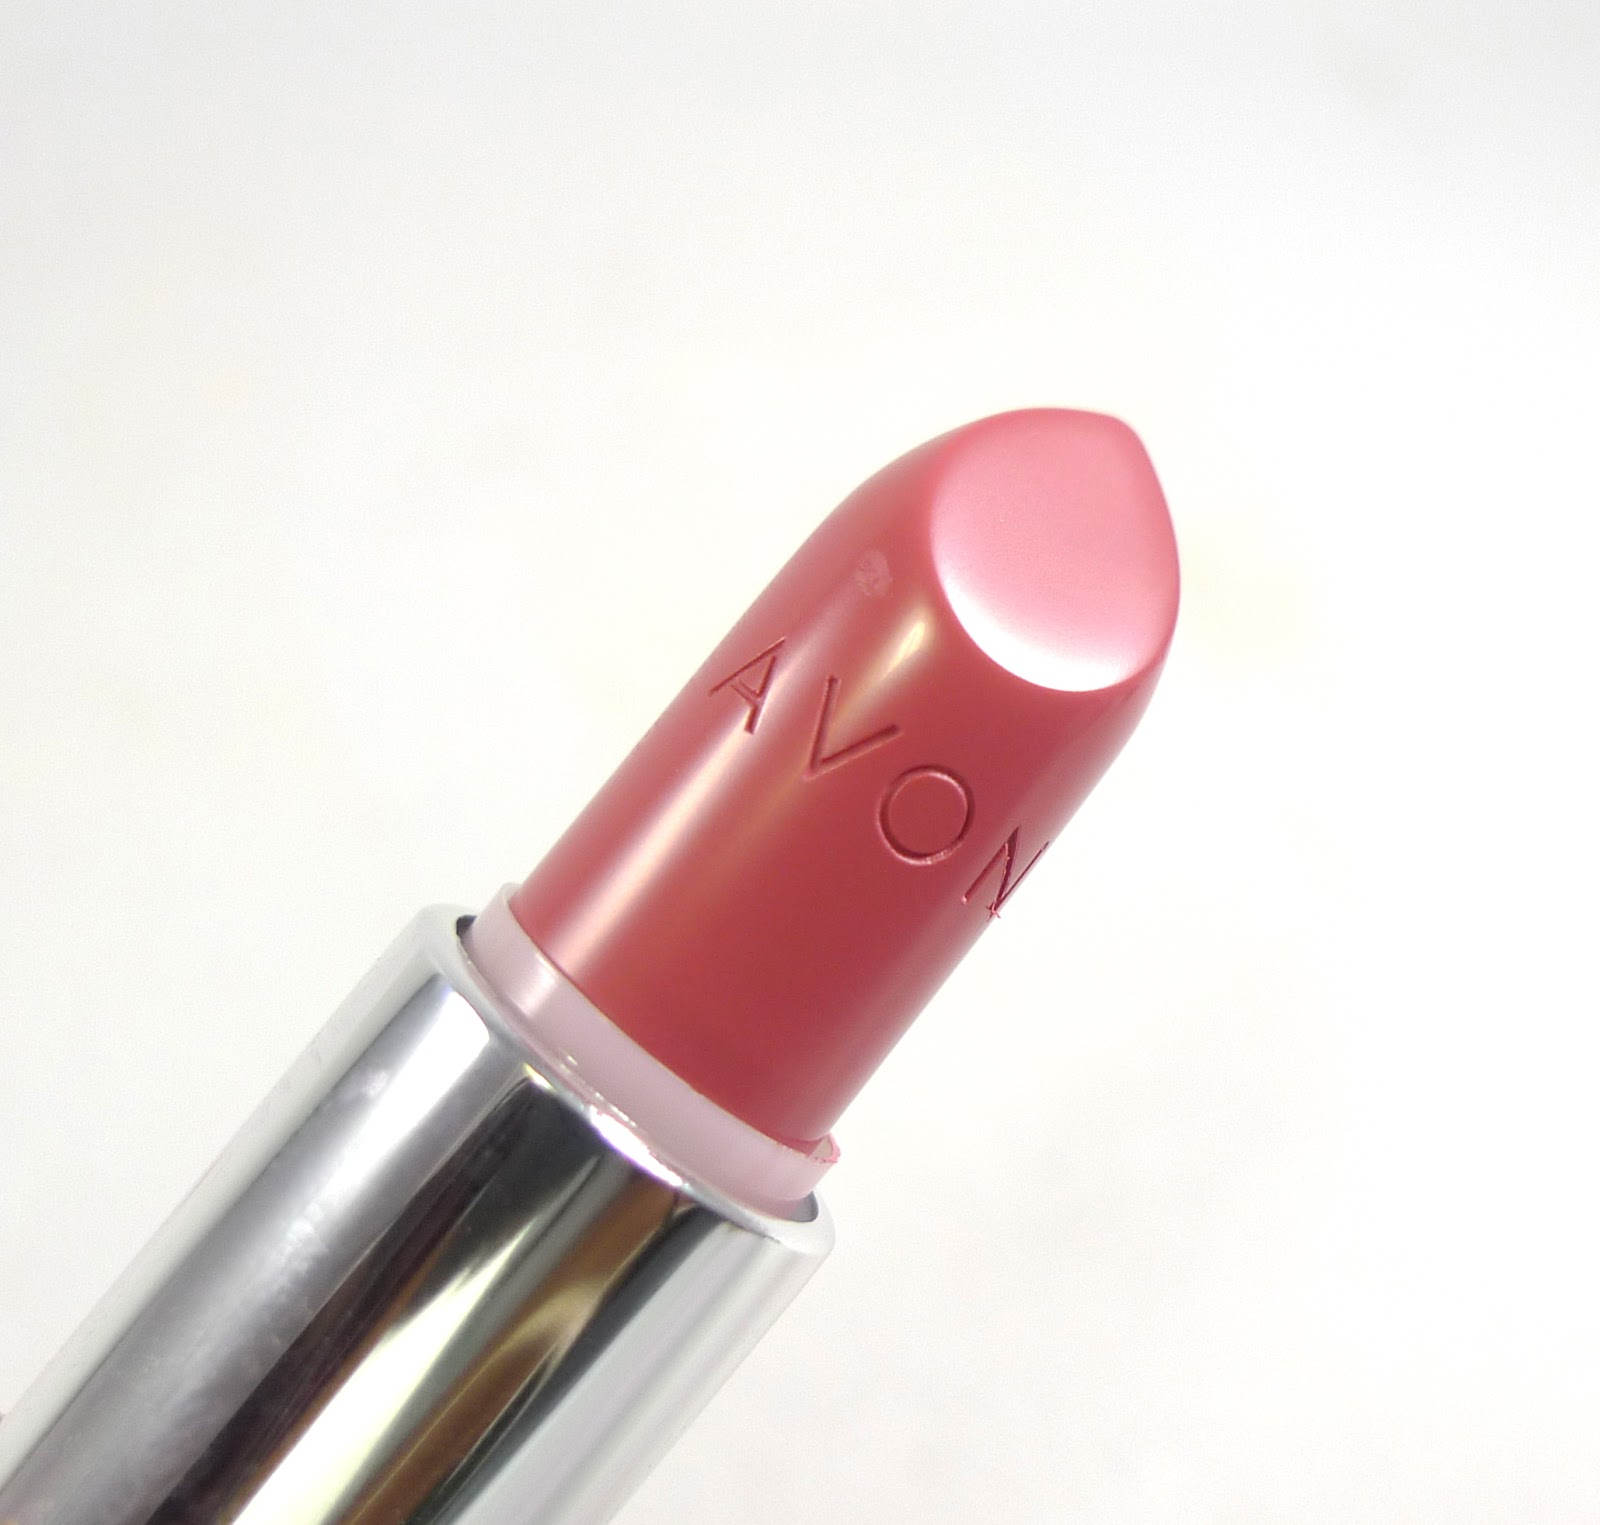 Avon Ultra Colour Lipsticks - Carnation